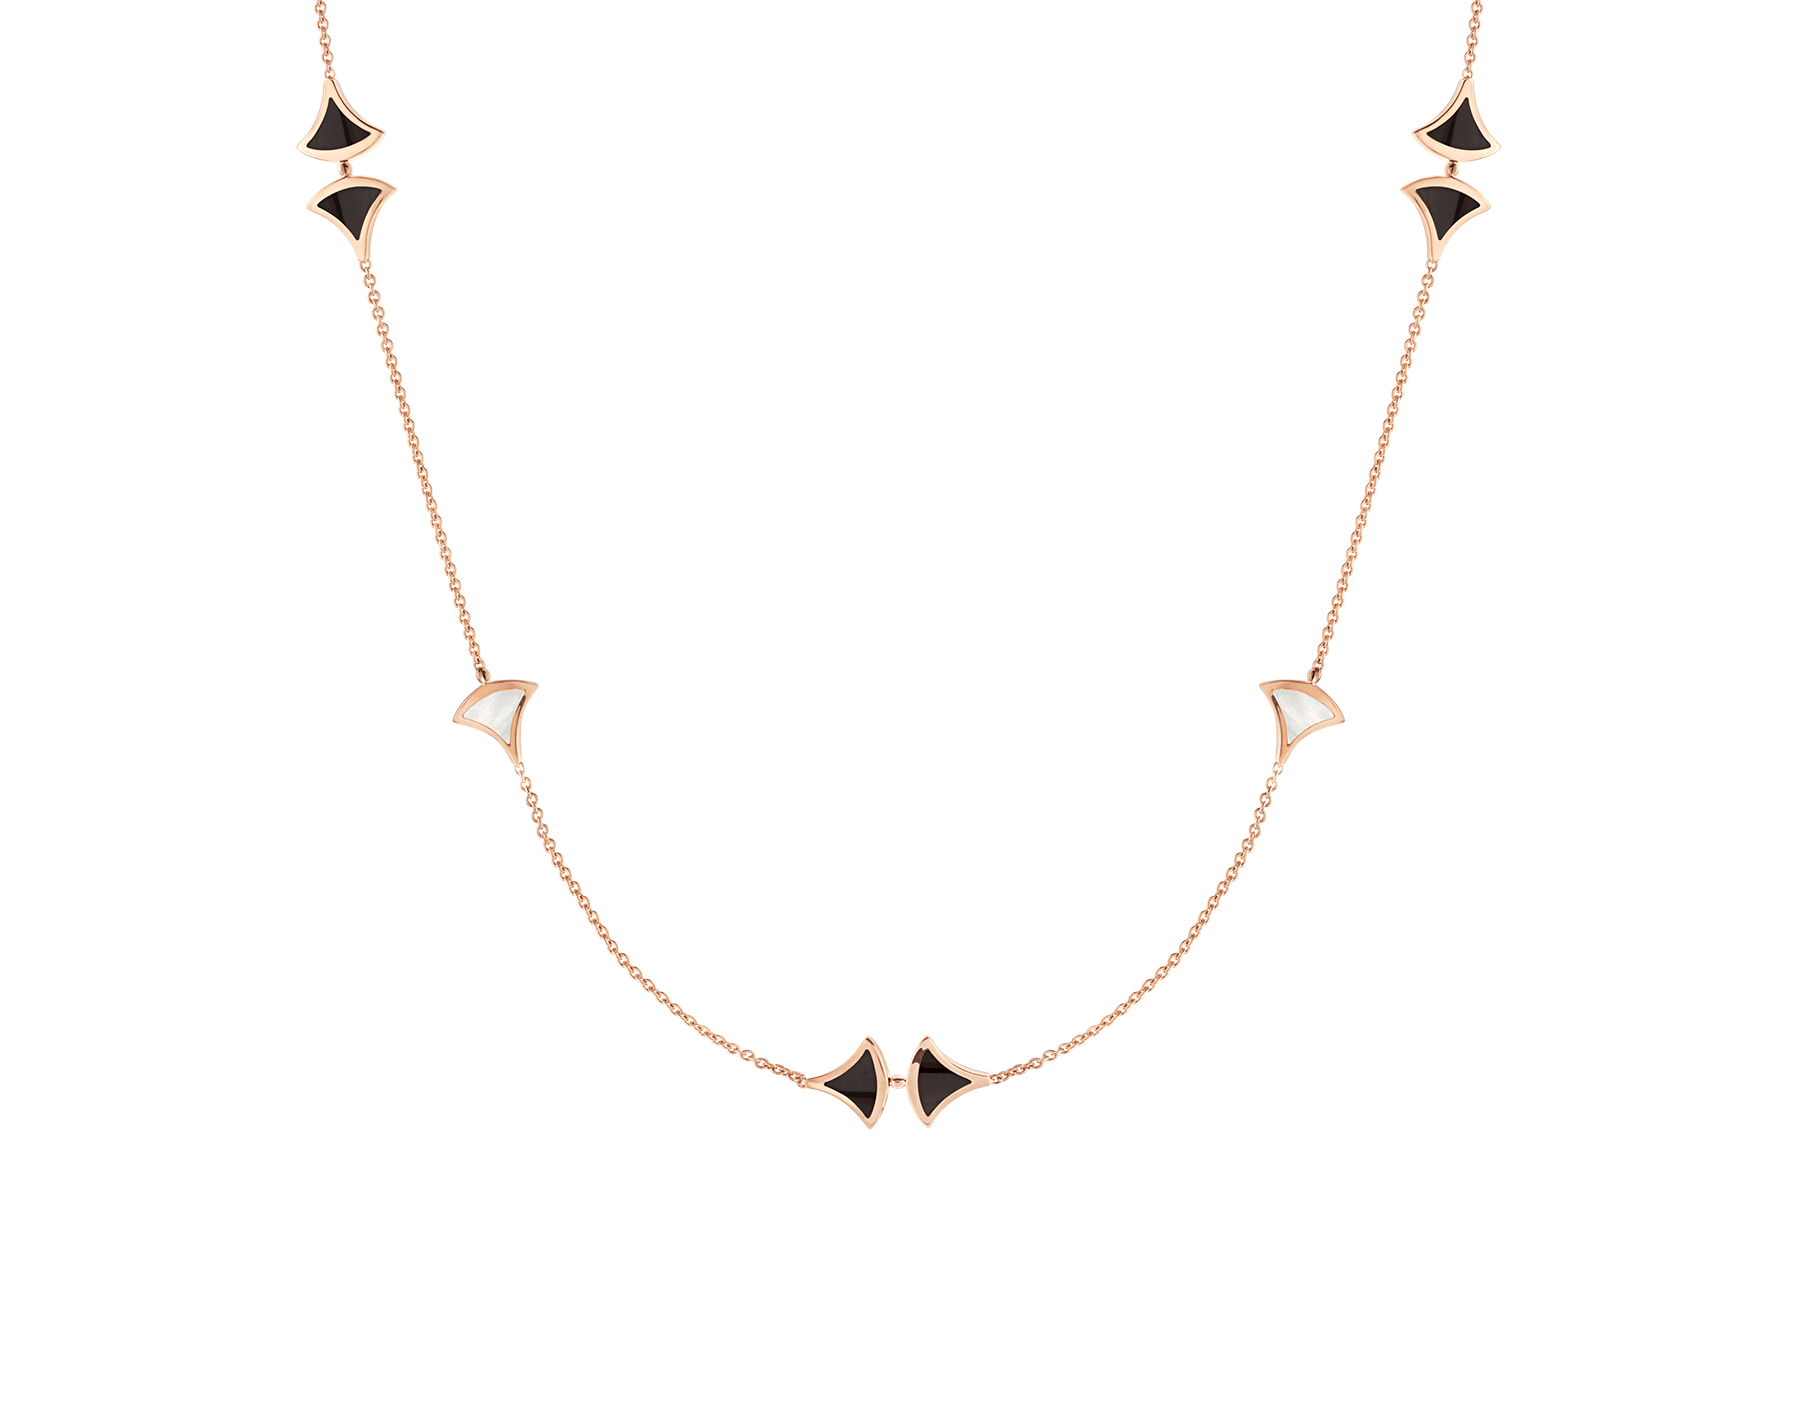 DIVAS' DREAM sautoir in 18 kt rose gold, set with mother-of-pearl and black onyx elements. 350060 image 1